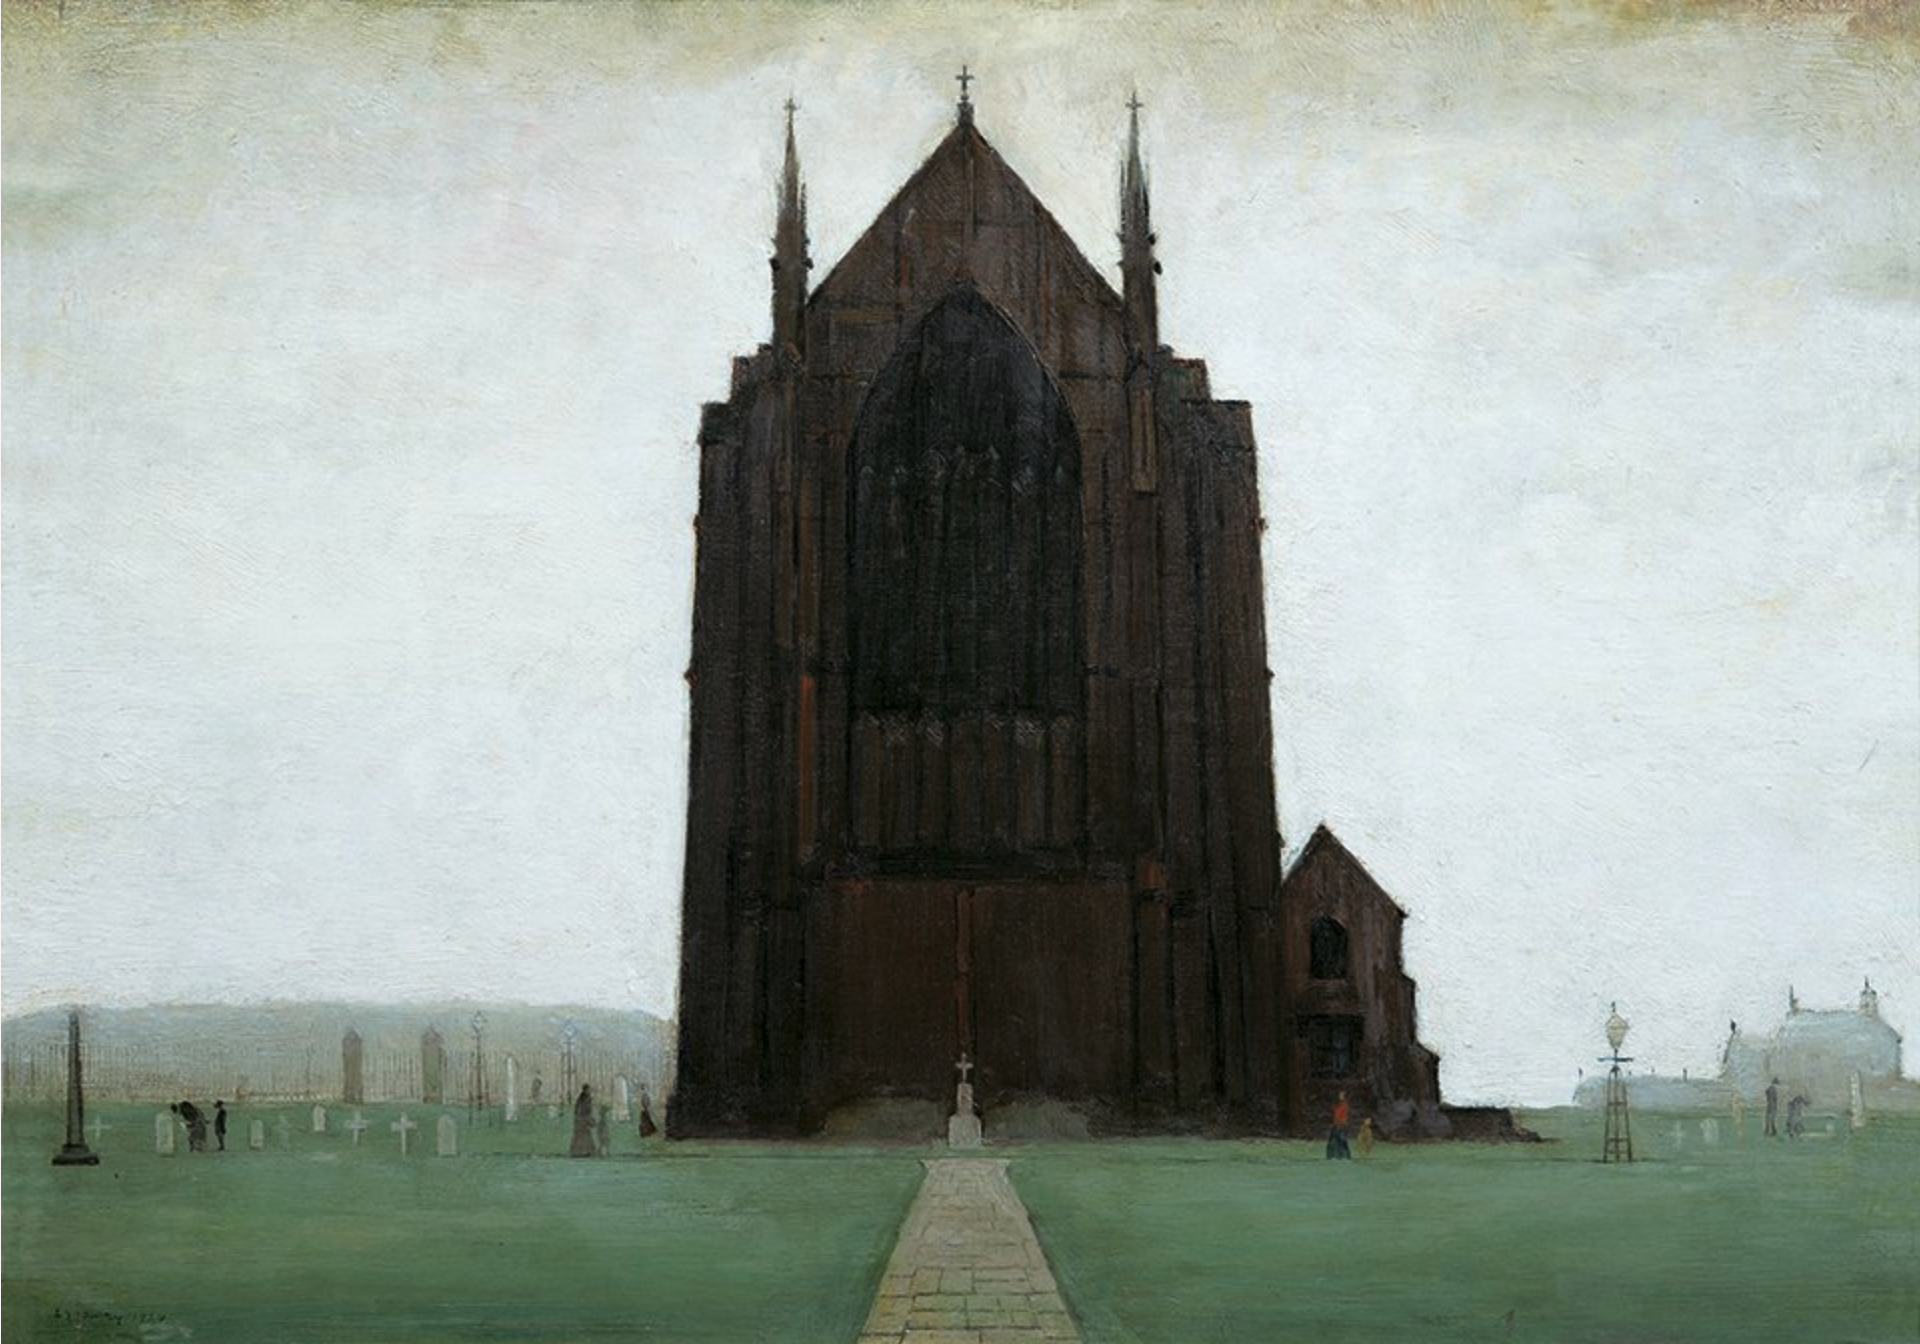 St Augustine's Church, Pendlebury (1924) by Laurence Stephen Lowry (1887 - 1976), English artist.